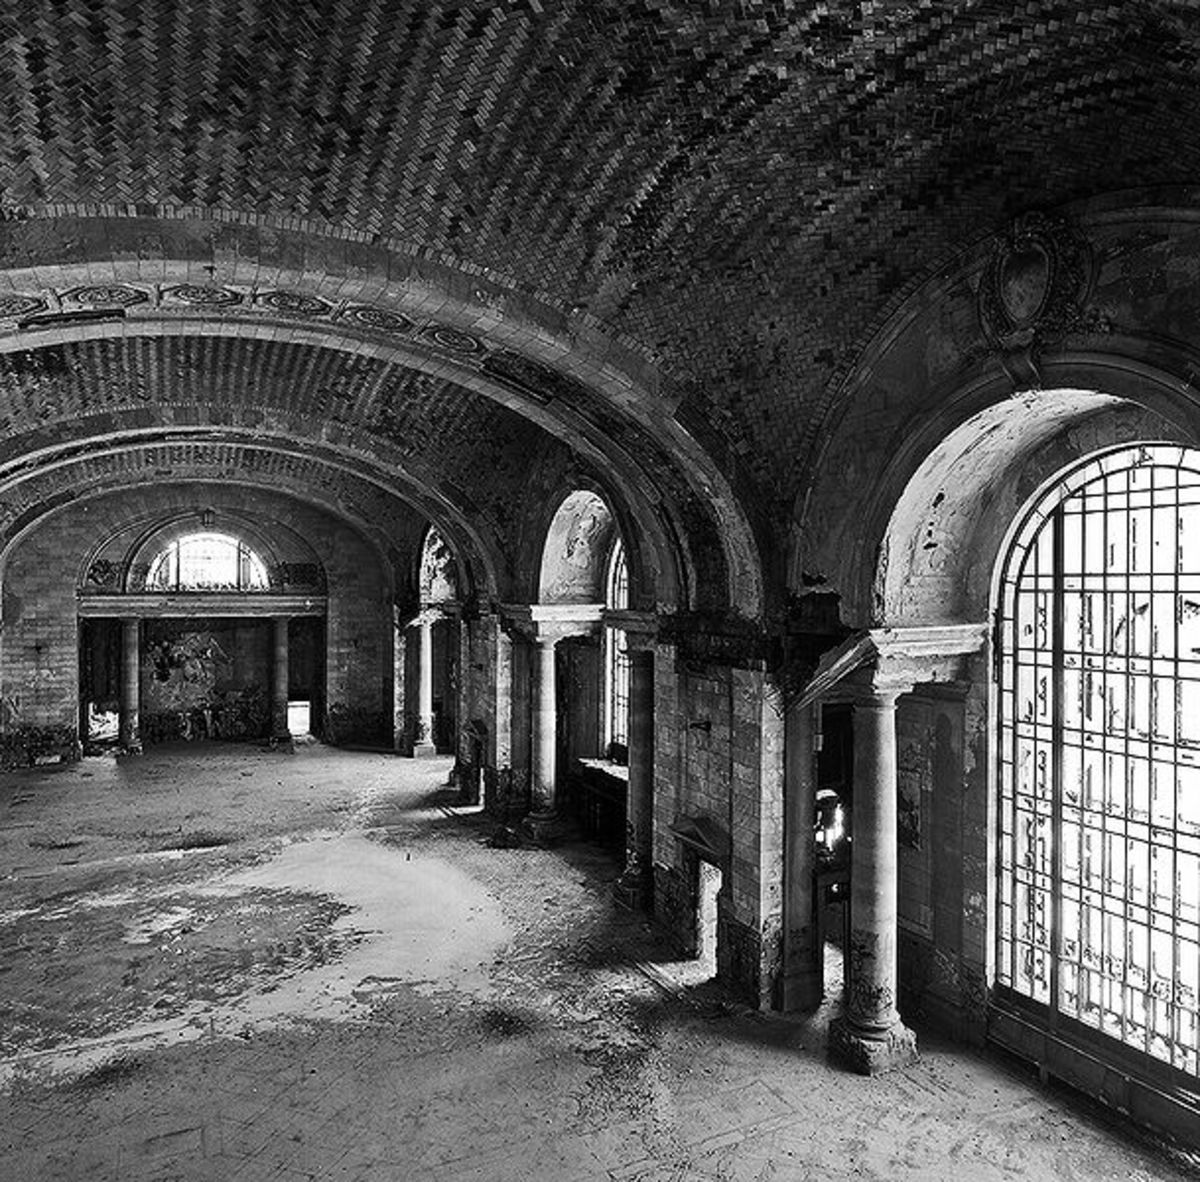 Interior Mezzanine of Michigan Central Station